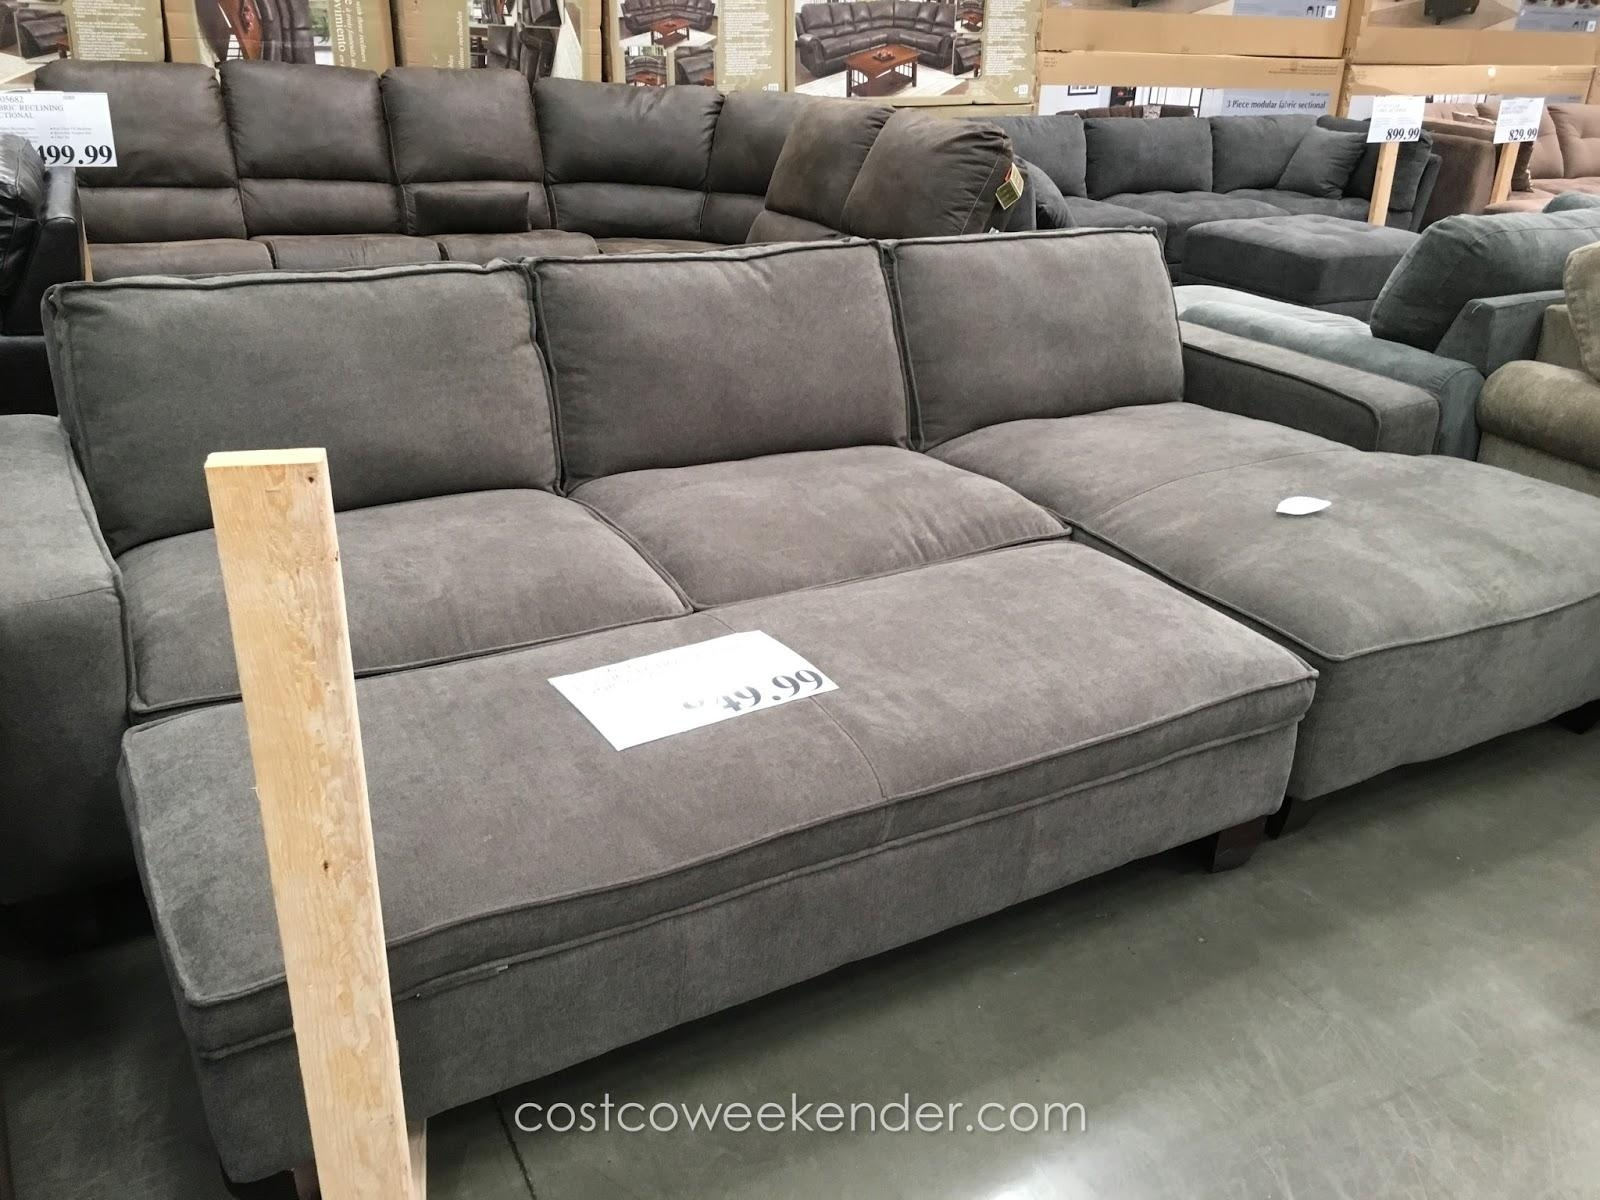 Furniture: Costco Couch | Costco Couches | Sectional Leather Sofas Throughout Costco Leather Sectional Sofas (Image 4 of 20)